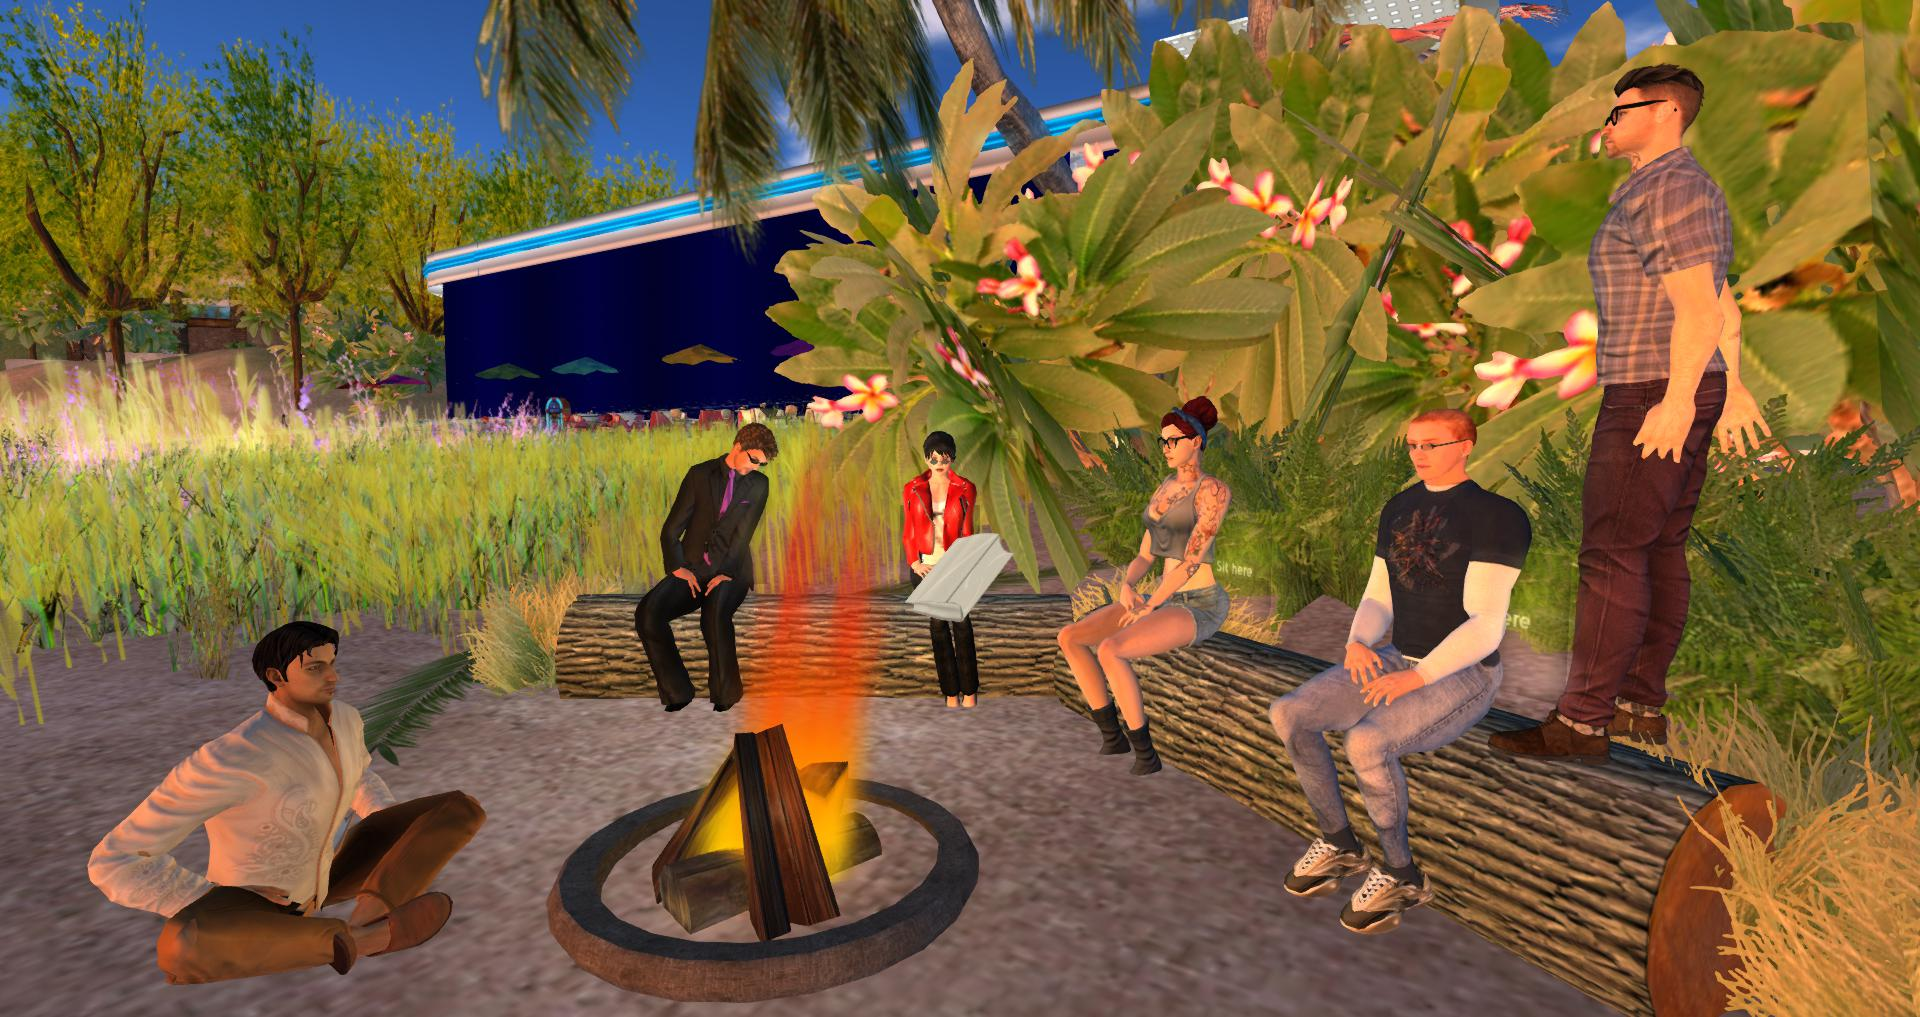 Group Pic around the campfire